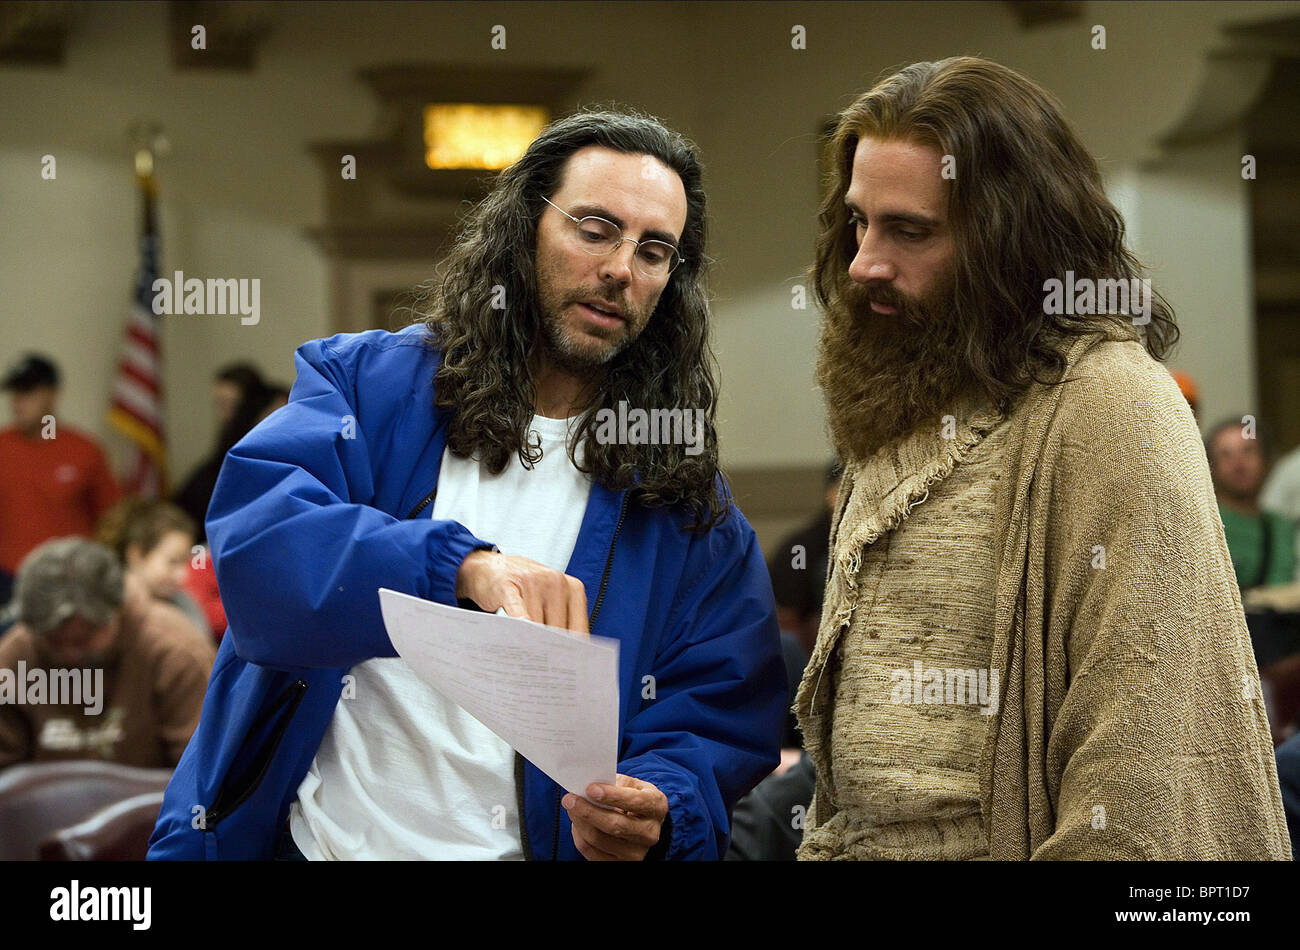 montage shadyacs message in evan almighty essay He rat pack in ratatouille, the armies of thousands in 300, the herds of animals in evan almighty, and before that, in 20 other feature films, all animated with massive, might lead you to believe the software developed by stephen regelous originally for lord of the rings, is crowd simulation software.